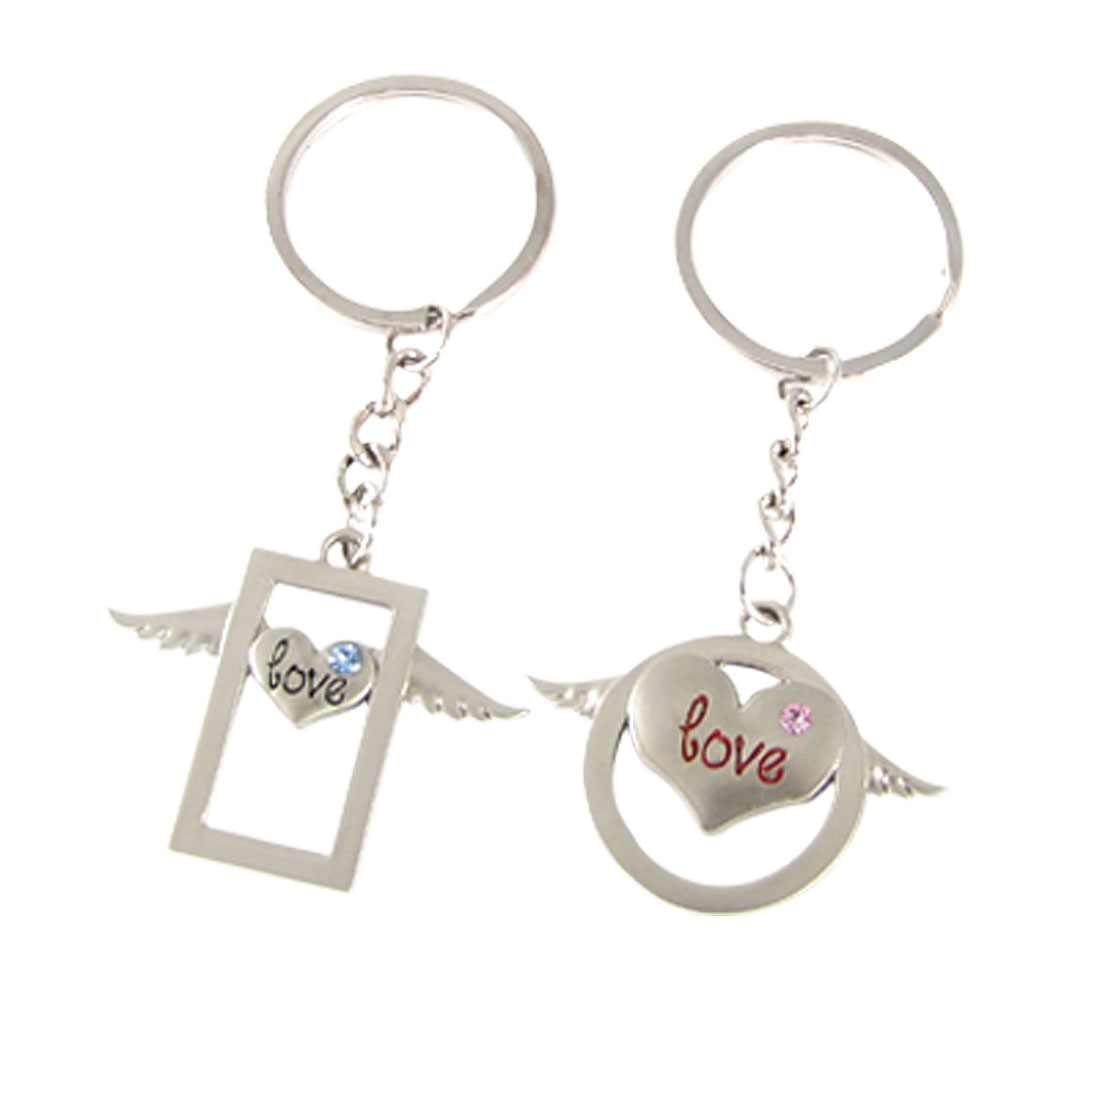 2 Pcs Silver Tone Alloy Angel Wing Design Love Keychain